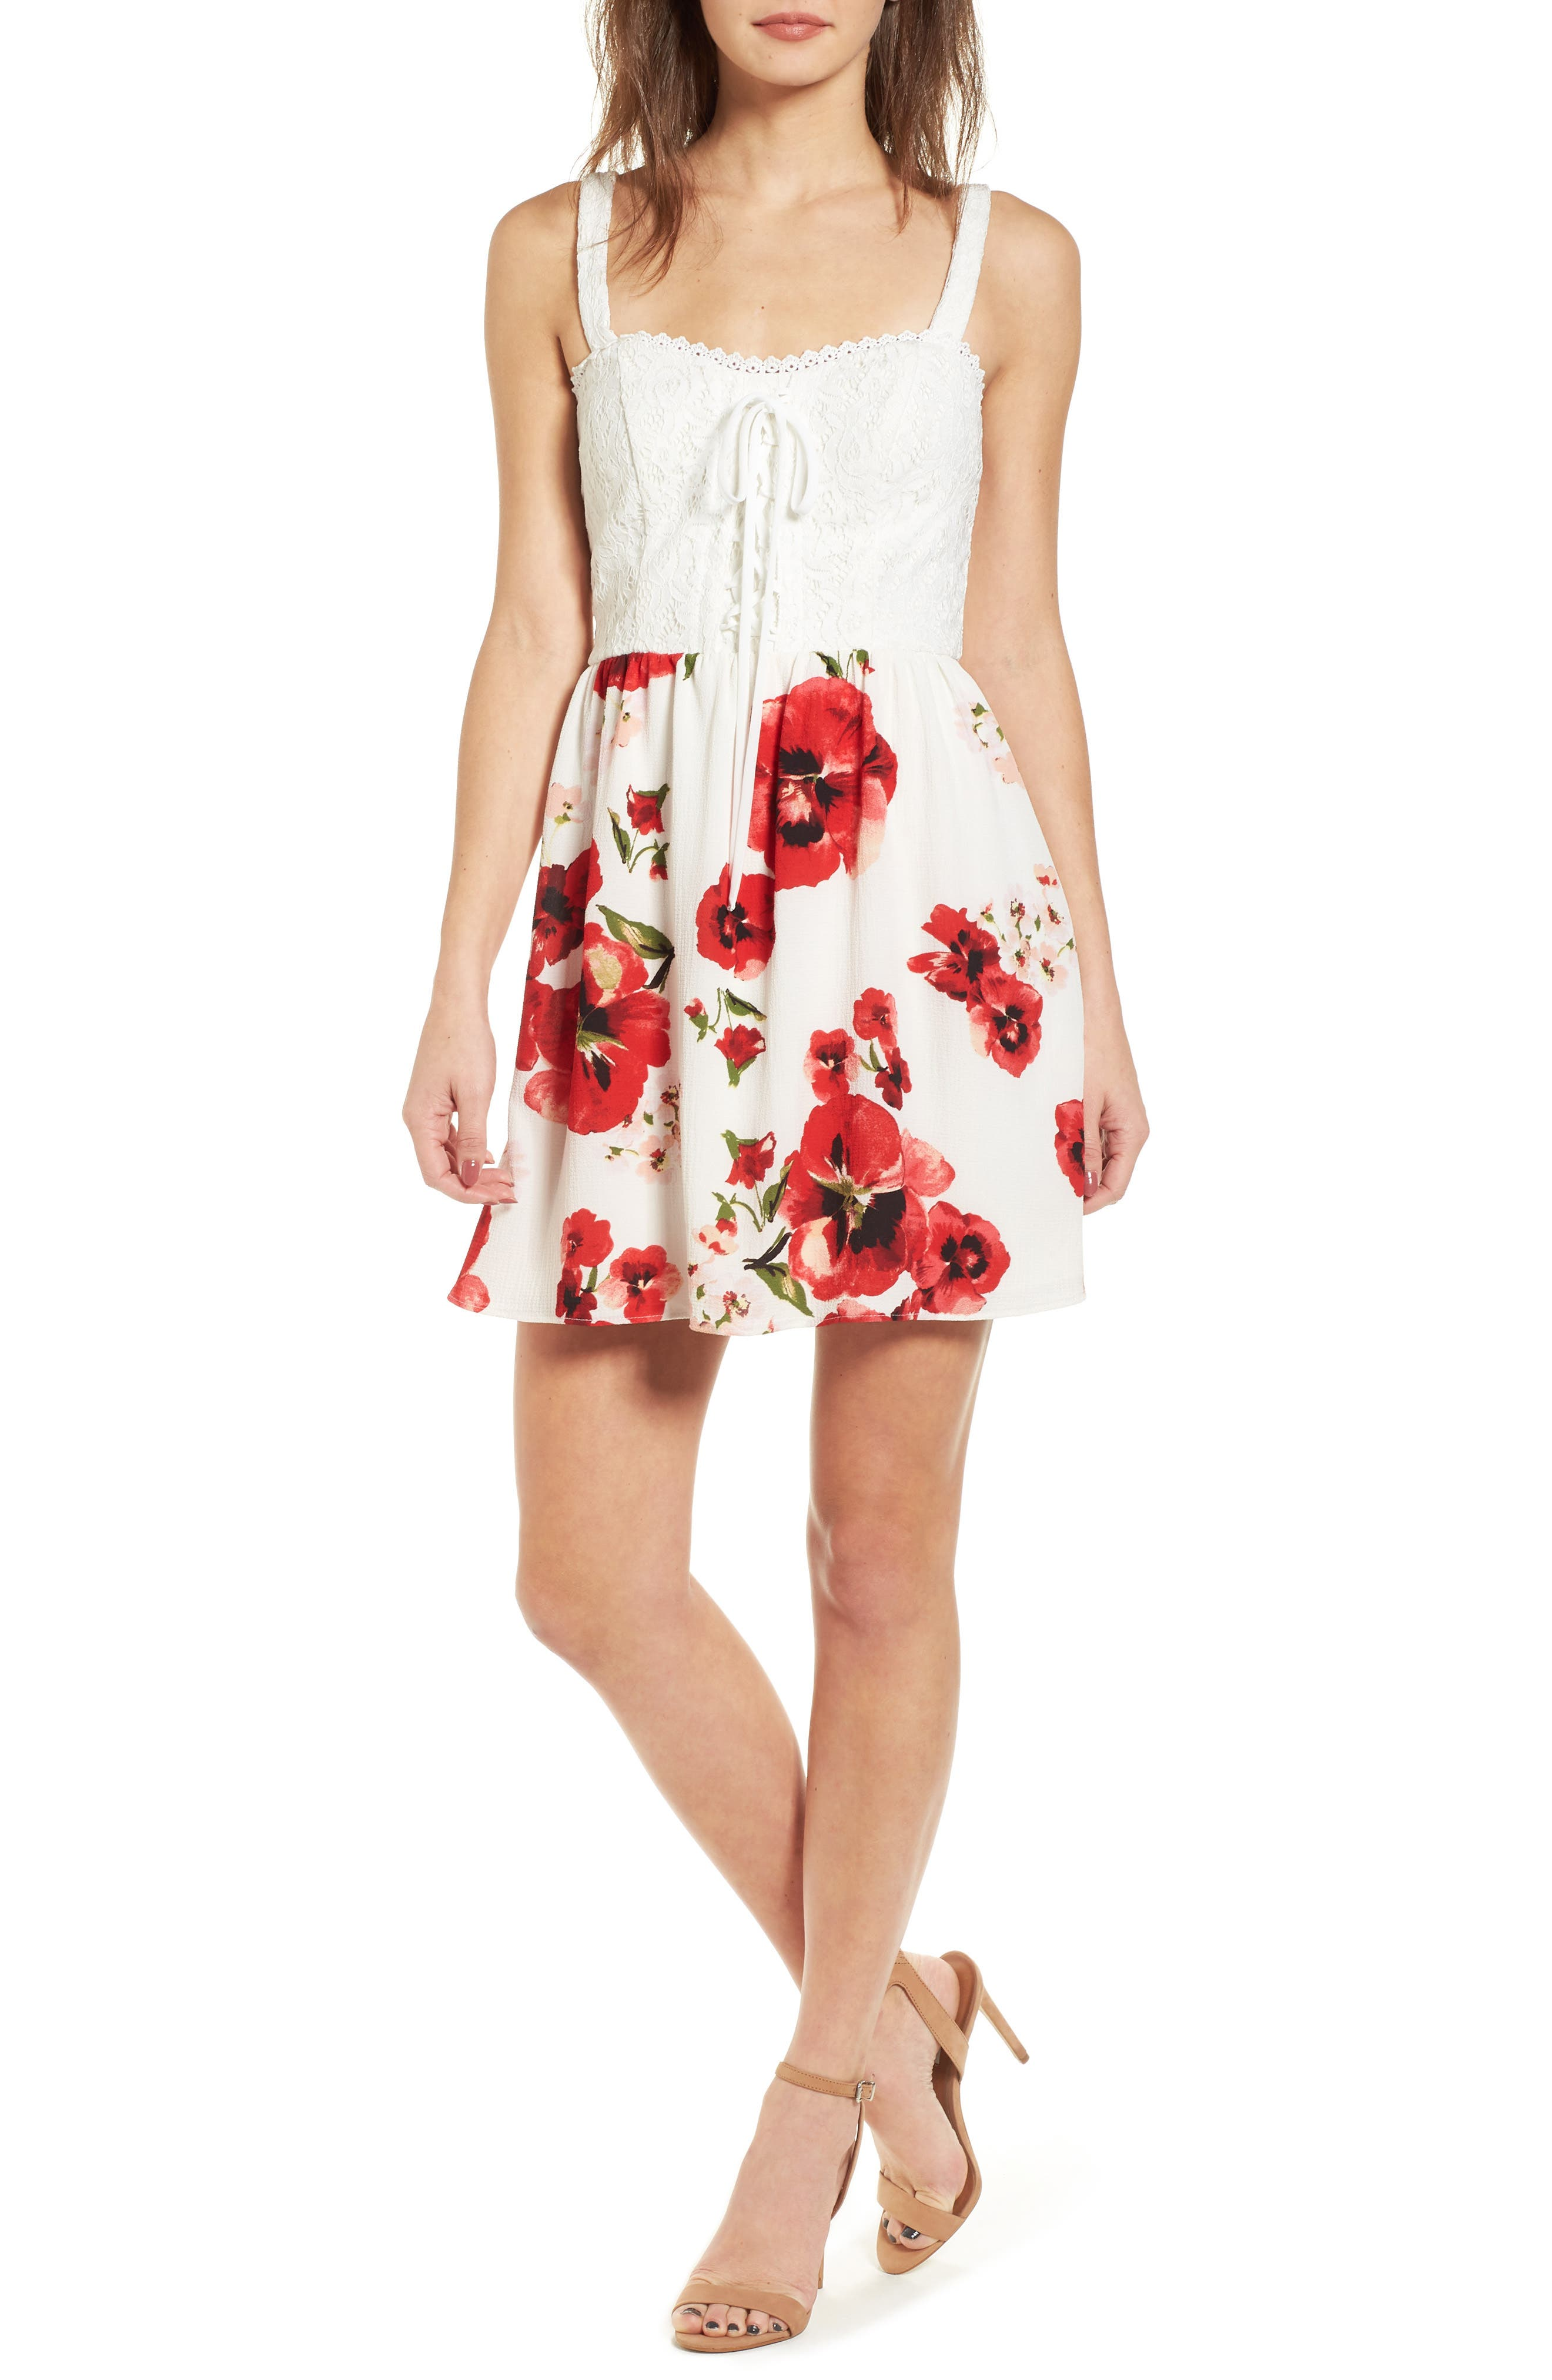 Lace Floral Fit and Flare Dress,                             Main thumbnail 1, color,                             Ivory/ Red